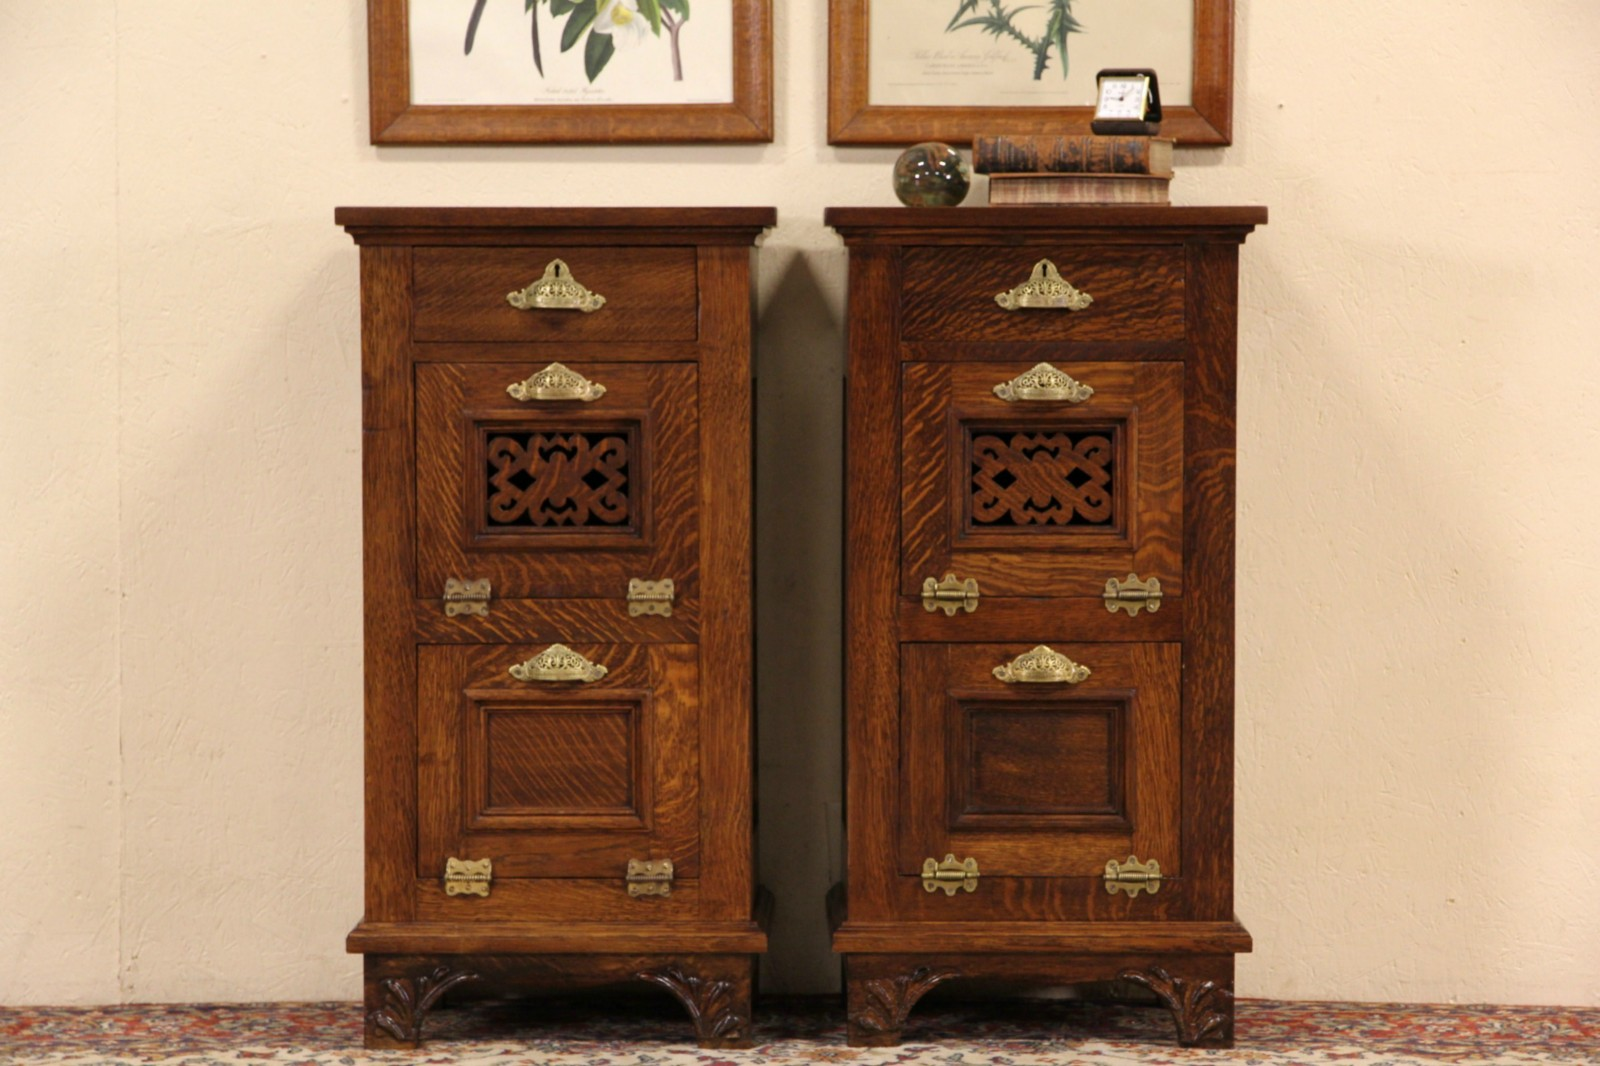 Pair Of 1895 Antique Oak Barber Shop Cabinets, End Tables Or Night Stands